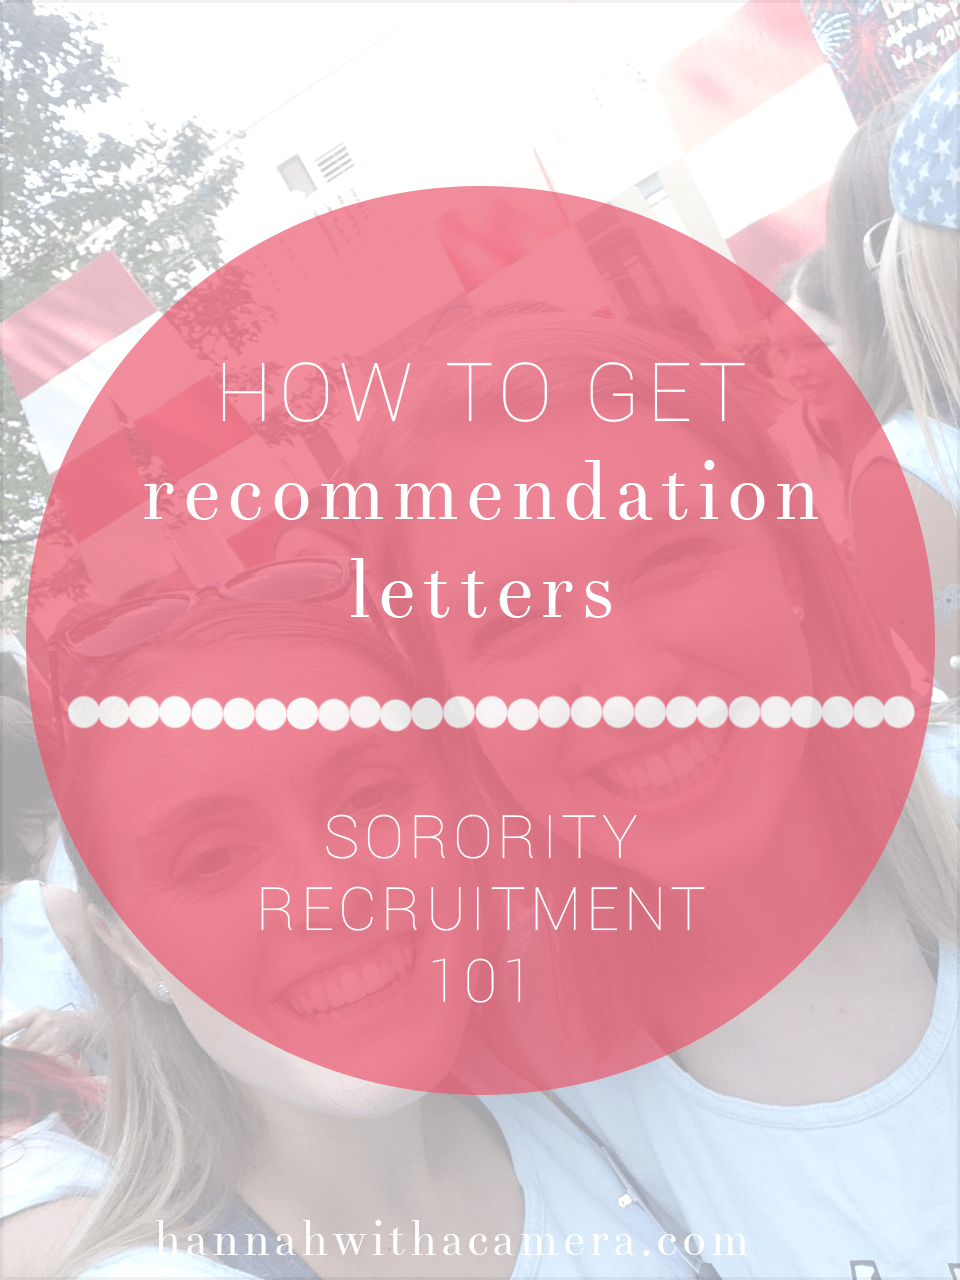 How To Get Recommendation Letters  Sorority Recruitment